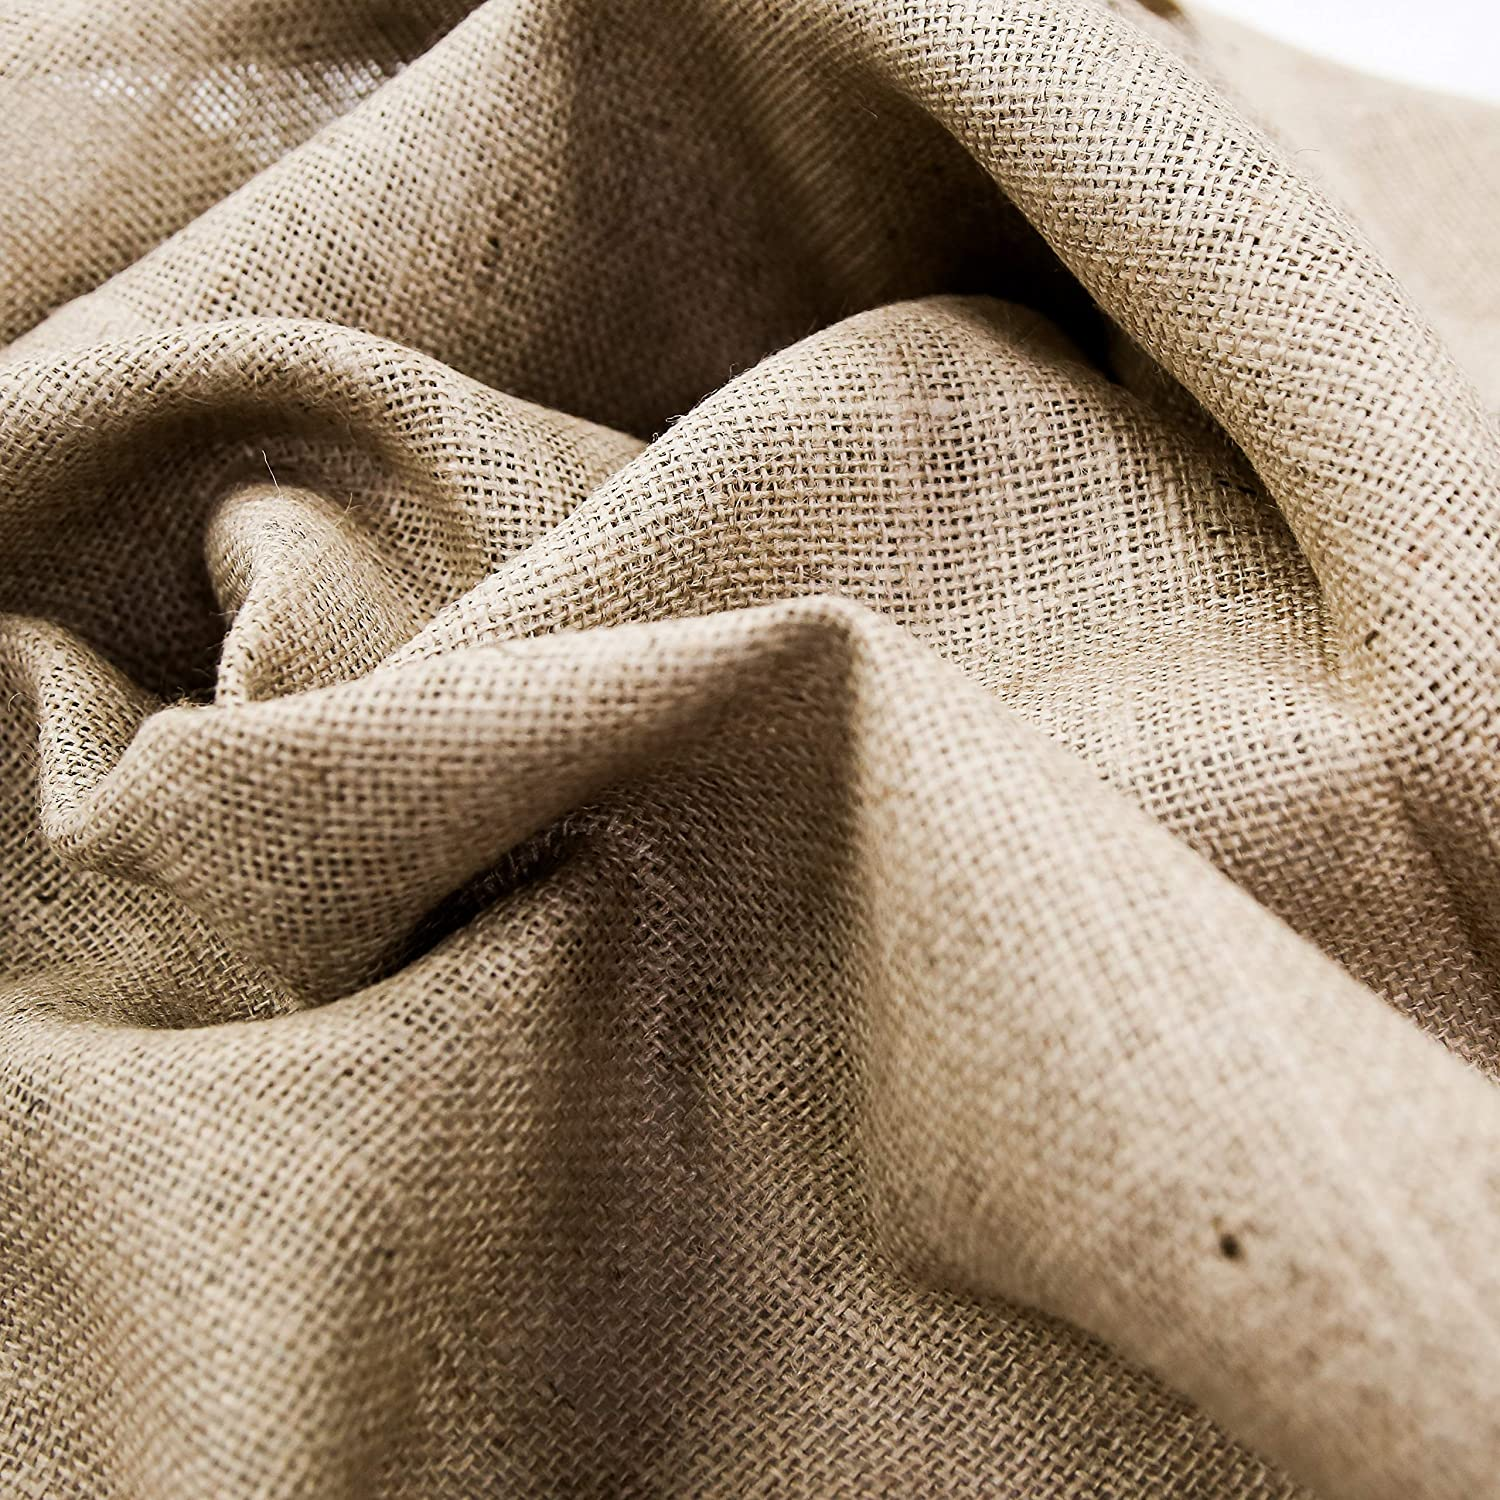 Natural 38-40 Inches Wide 100/% Jute Over 100 Yards in Stock- 10 Yard Bolt Burlap Fabric